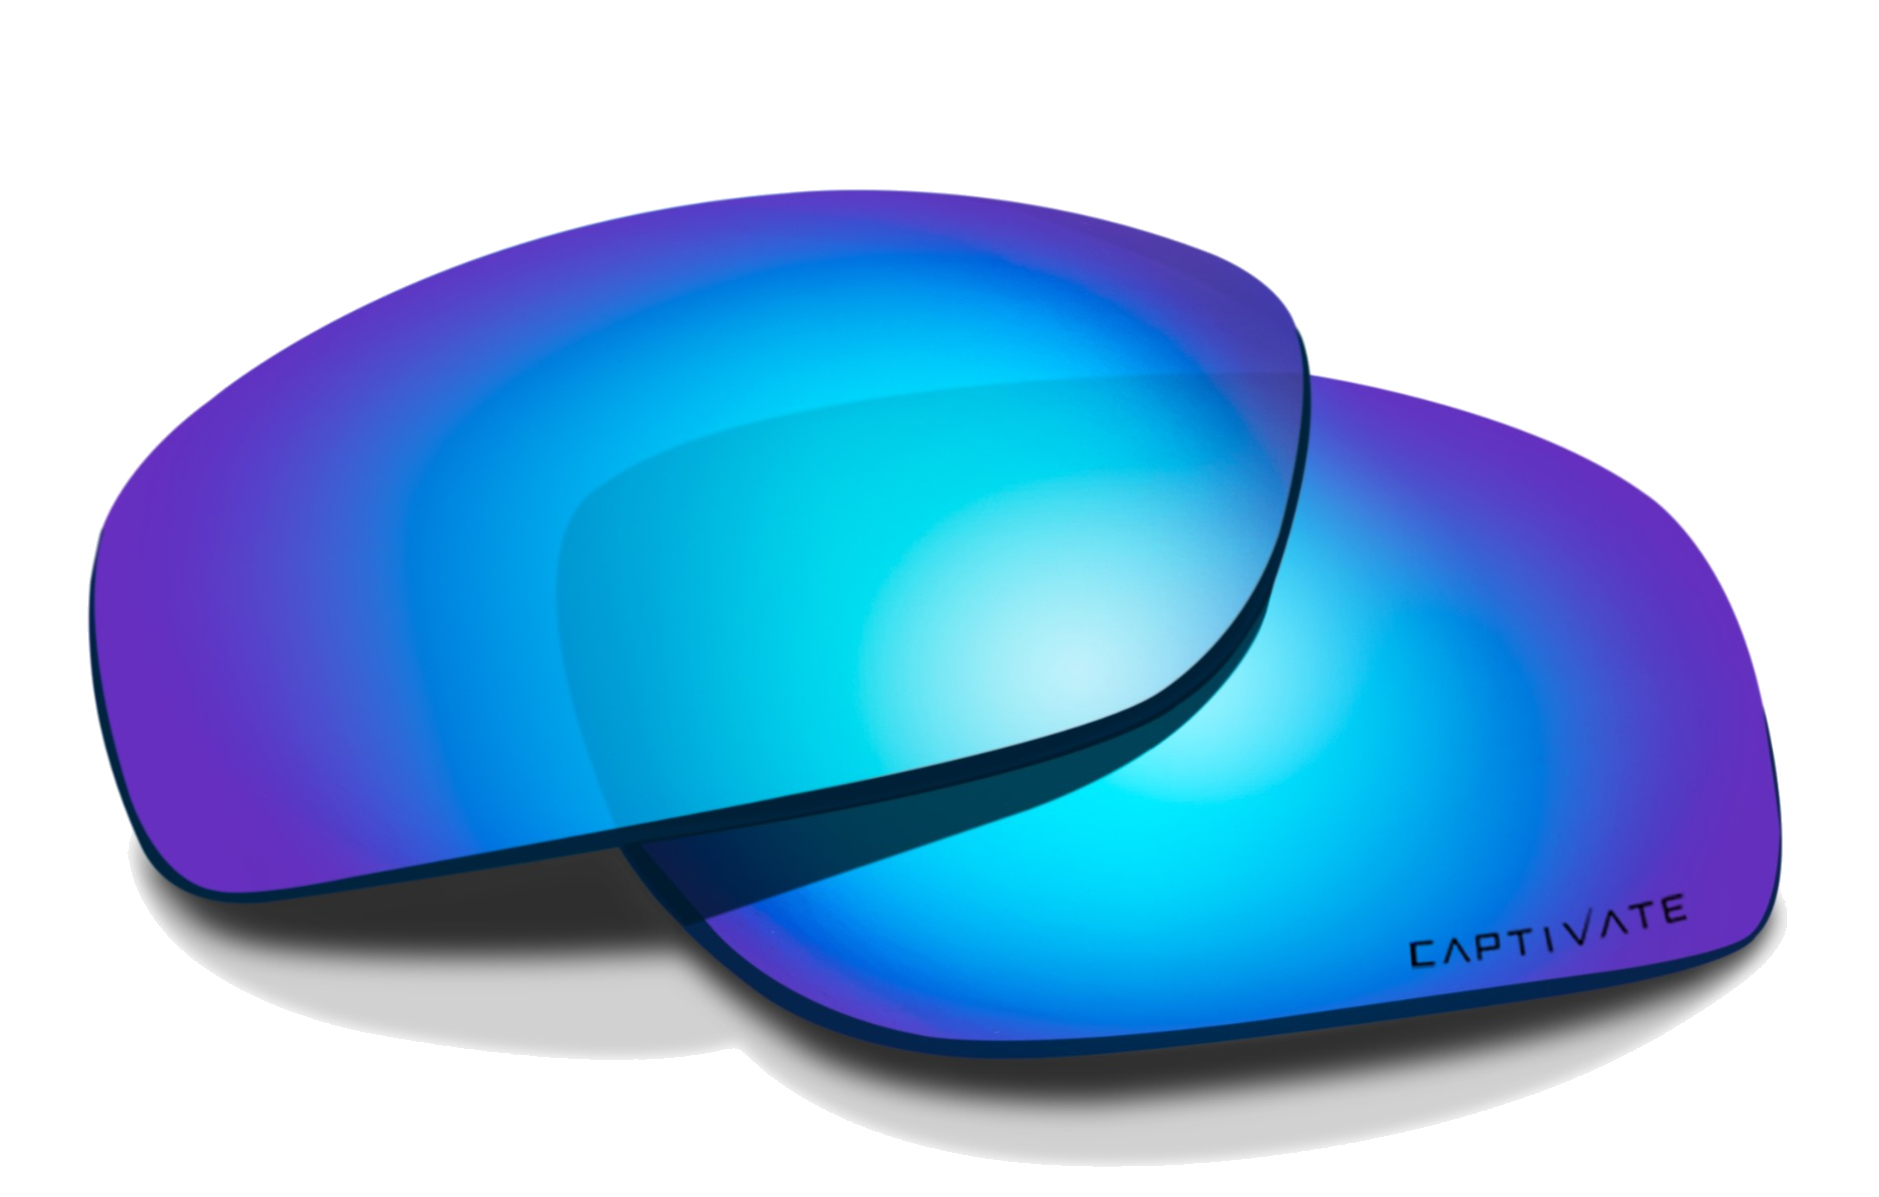 Twisted CAPTIVATE™ Polarized Lenses Image